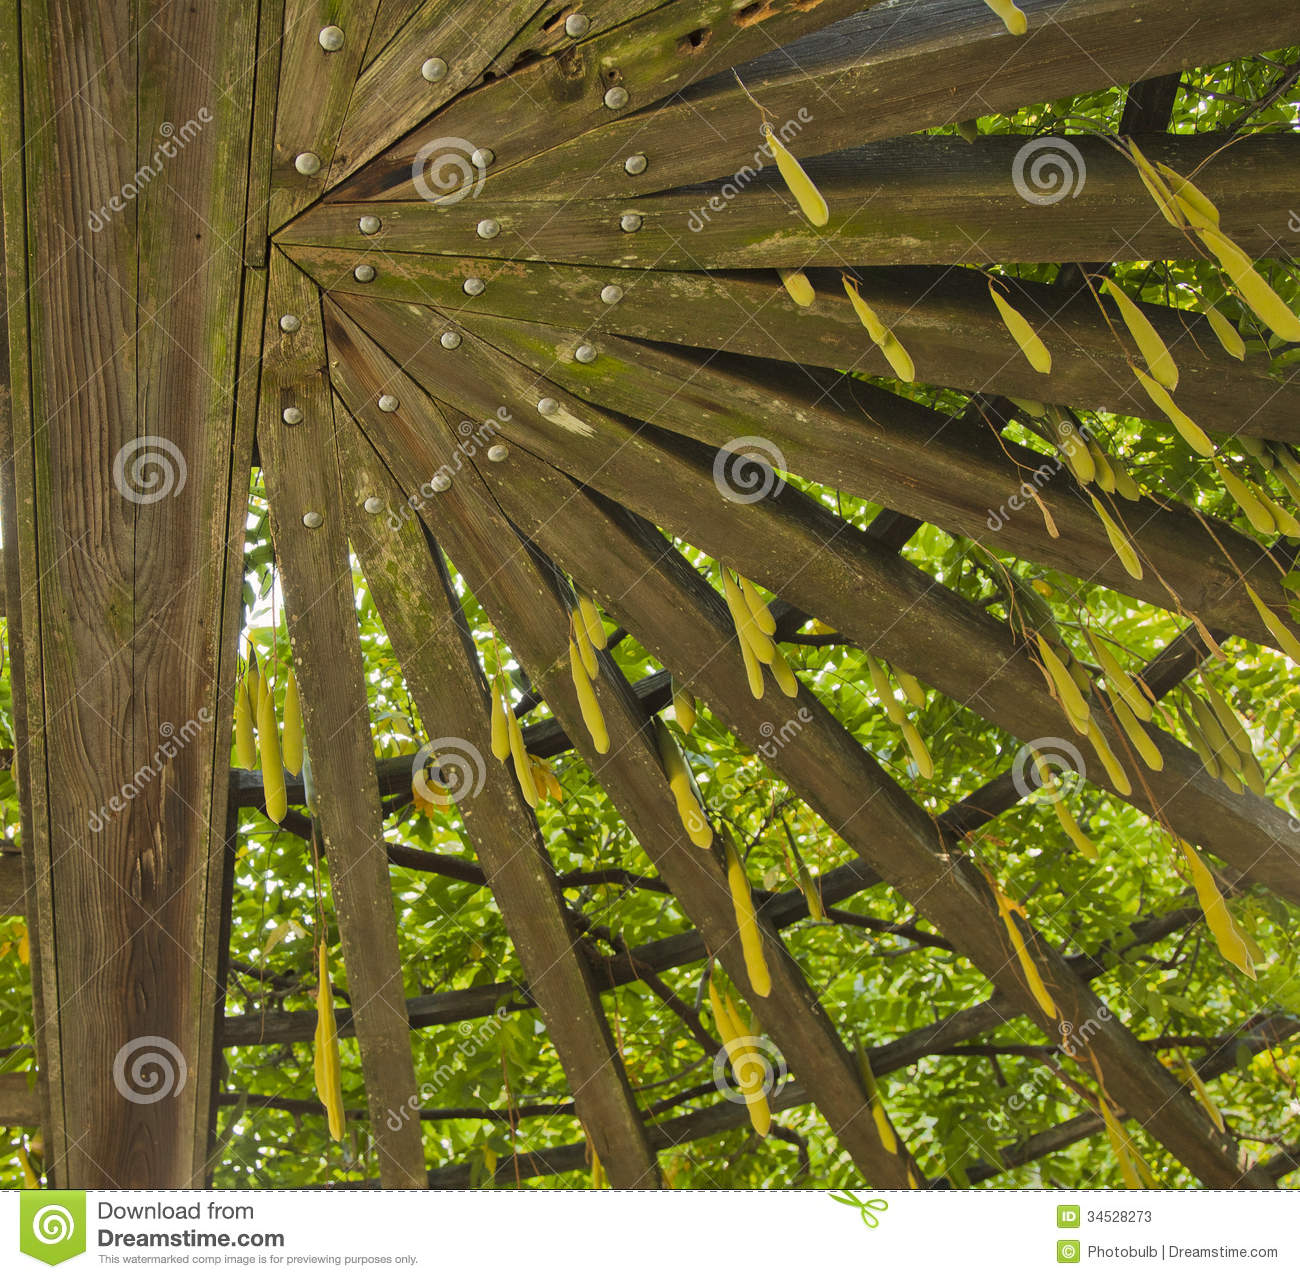 Treillis de jardin photos stock image 34528273 for Treillis jardin